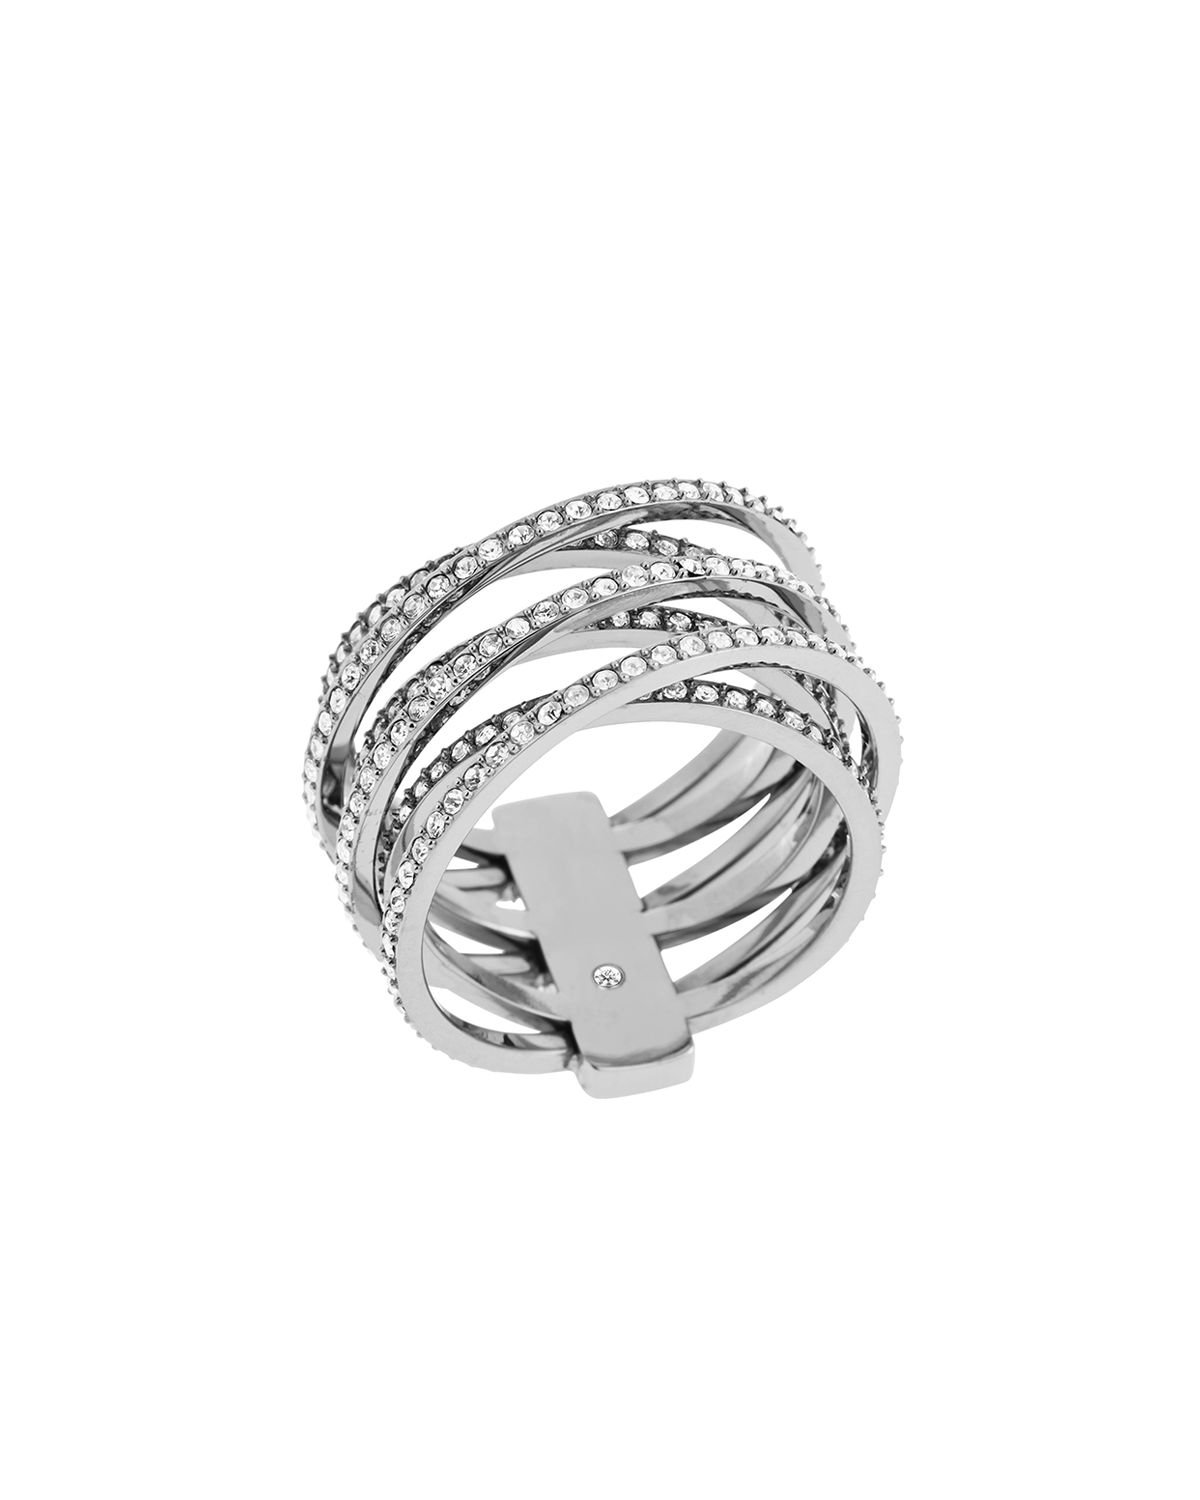 michael kors pave crisscross band ring in silver lyst